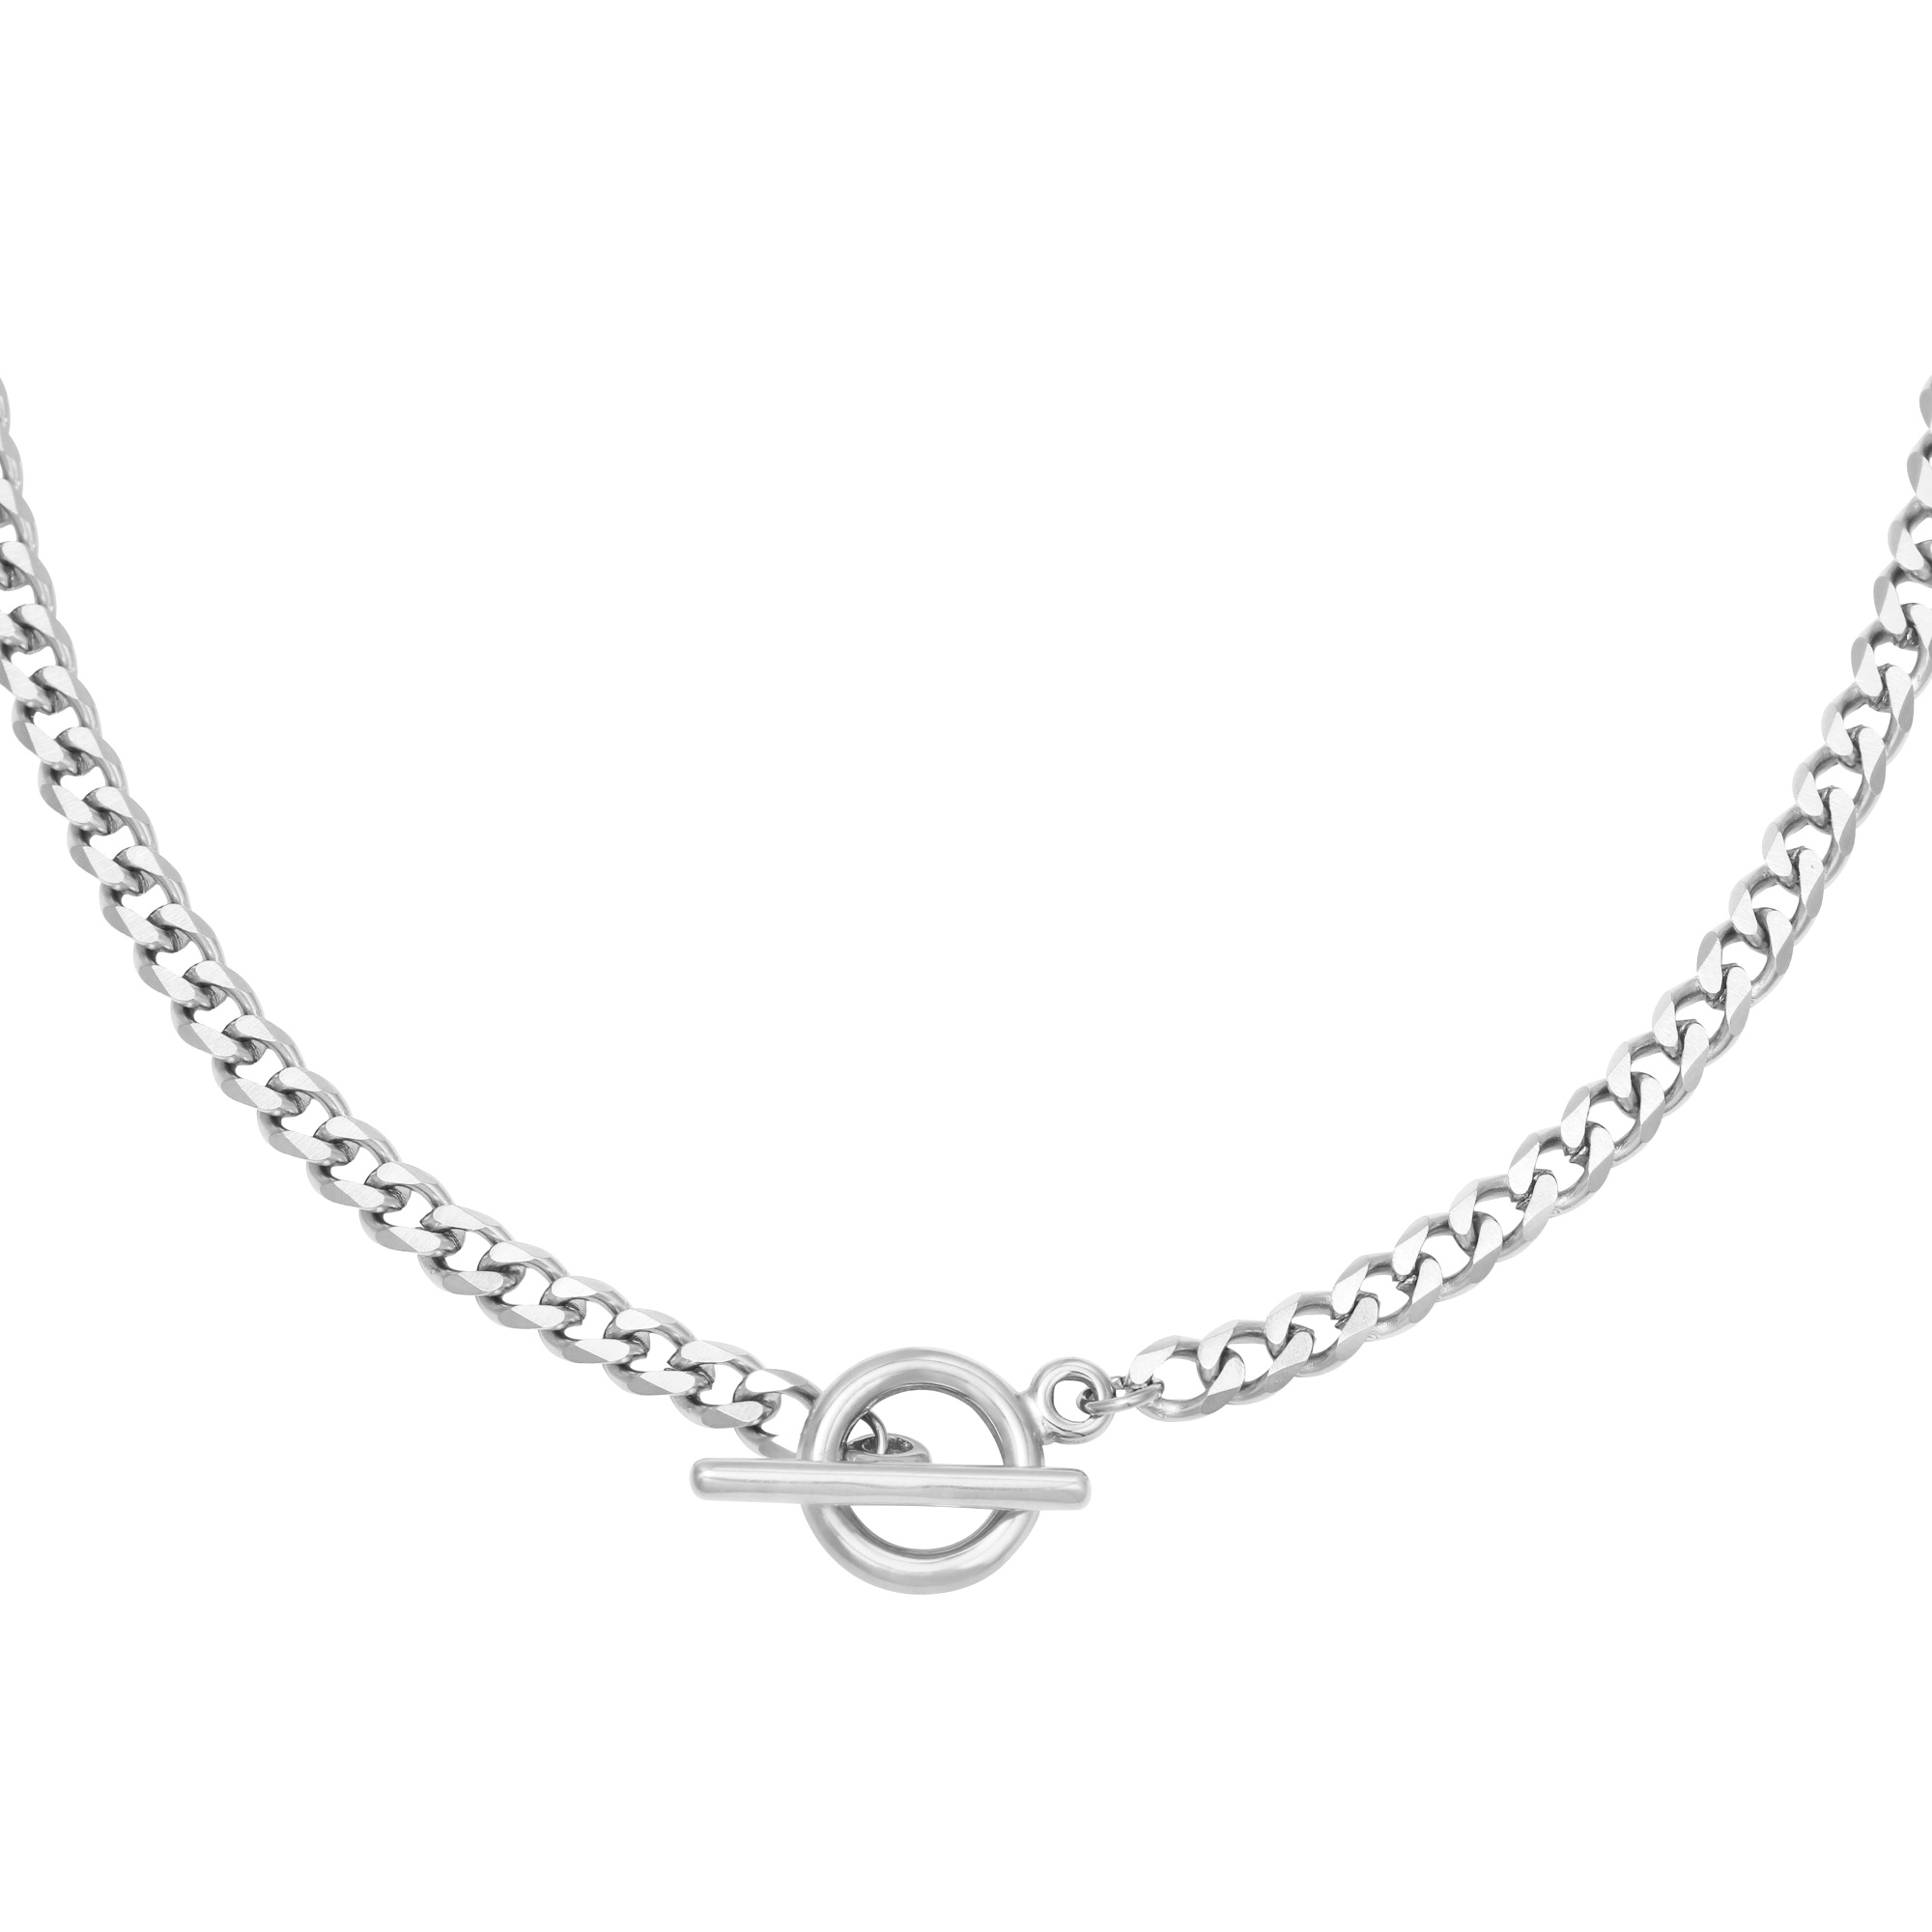 By Moise BIG CHAIN NECKLACE SILVER